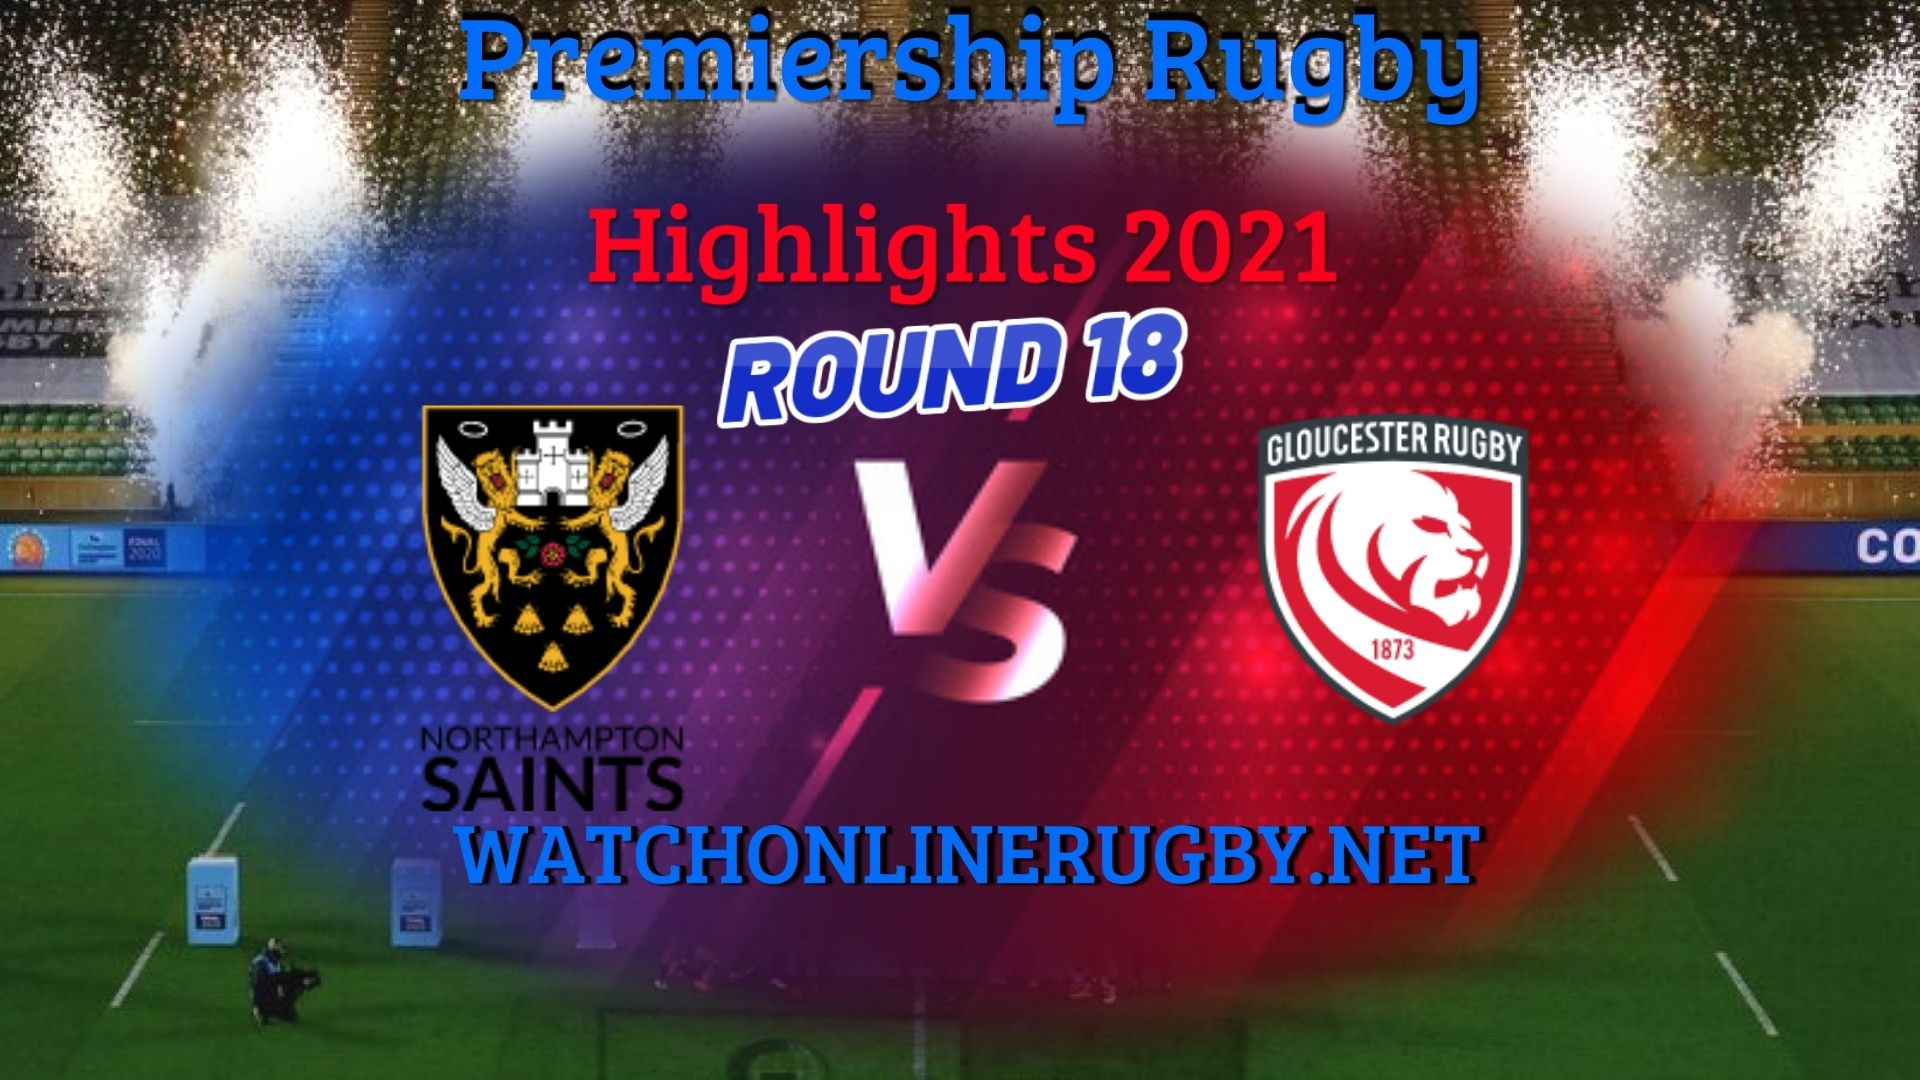 Northampton Saints Vs Gloucester Rugby Premiership Rugby 2021 RD 18